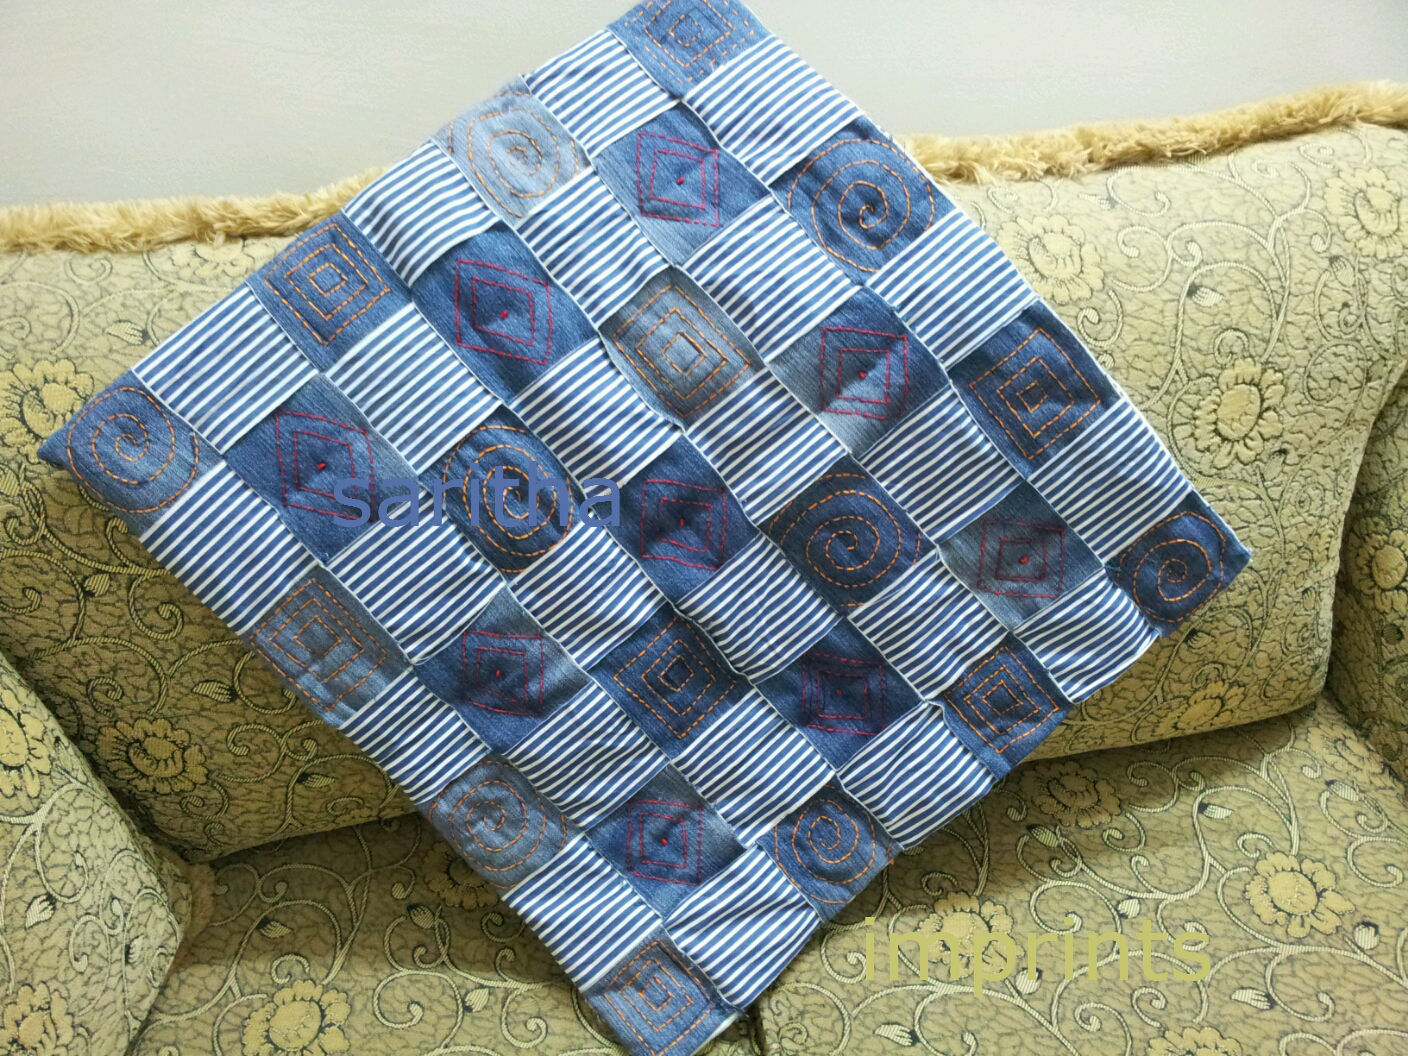 http://www.imprintshandmade.com/2013/02/how-to-recycle-old-jeans-quilt-place-mat.html